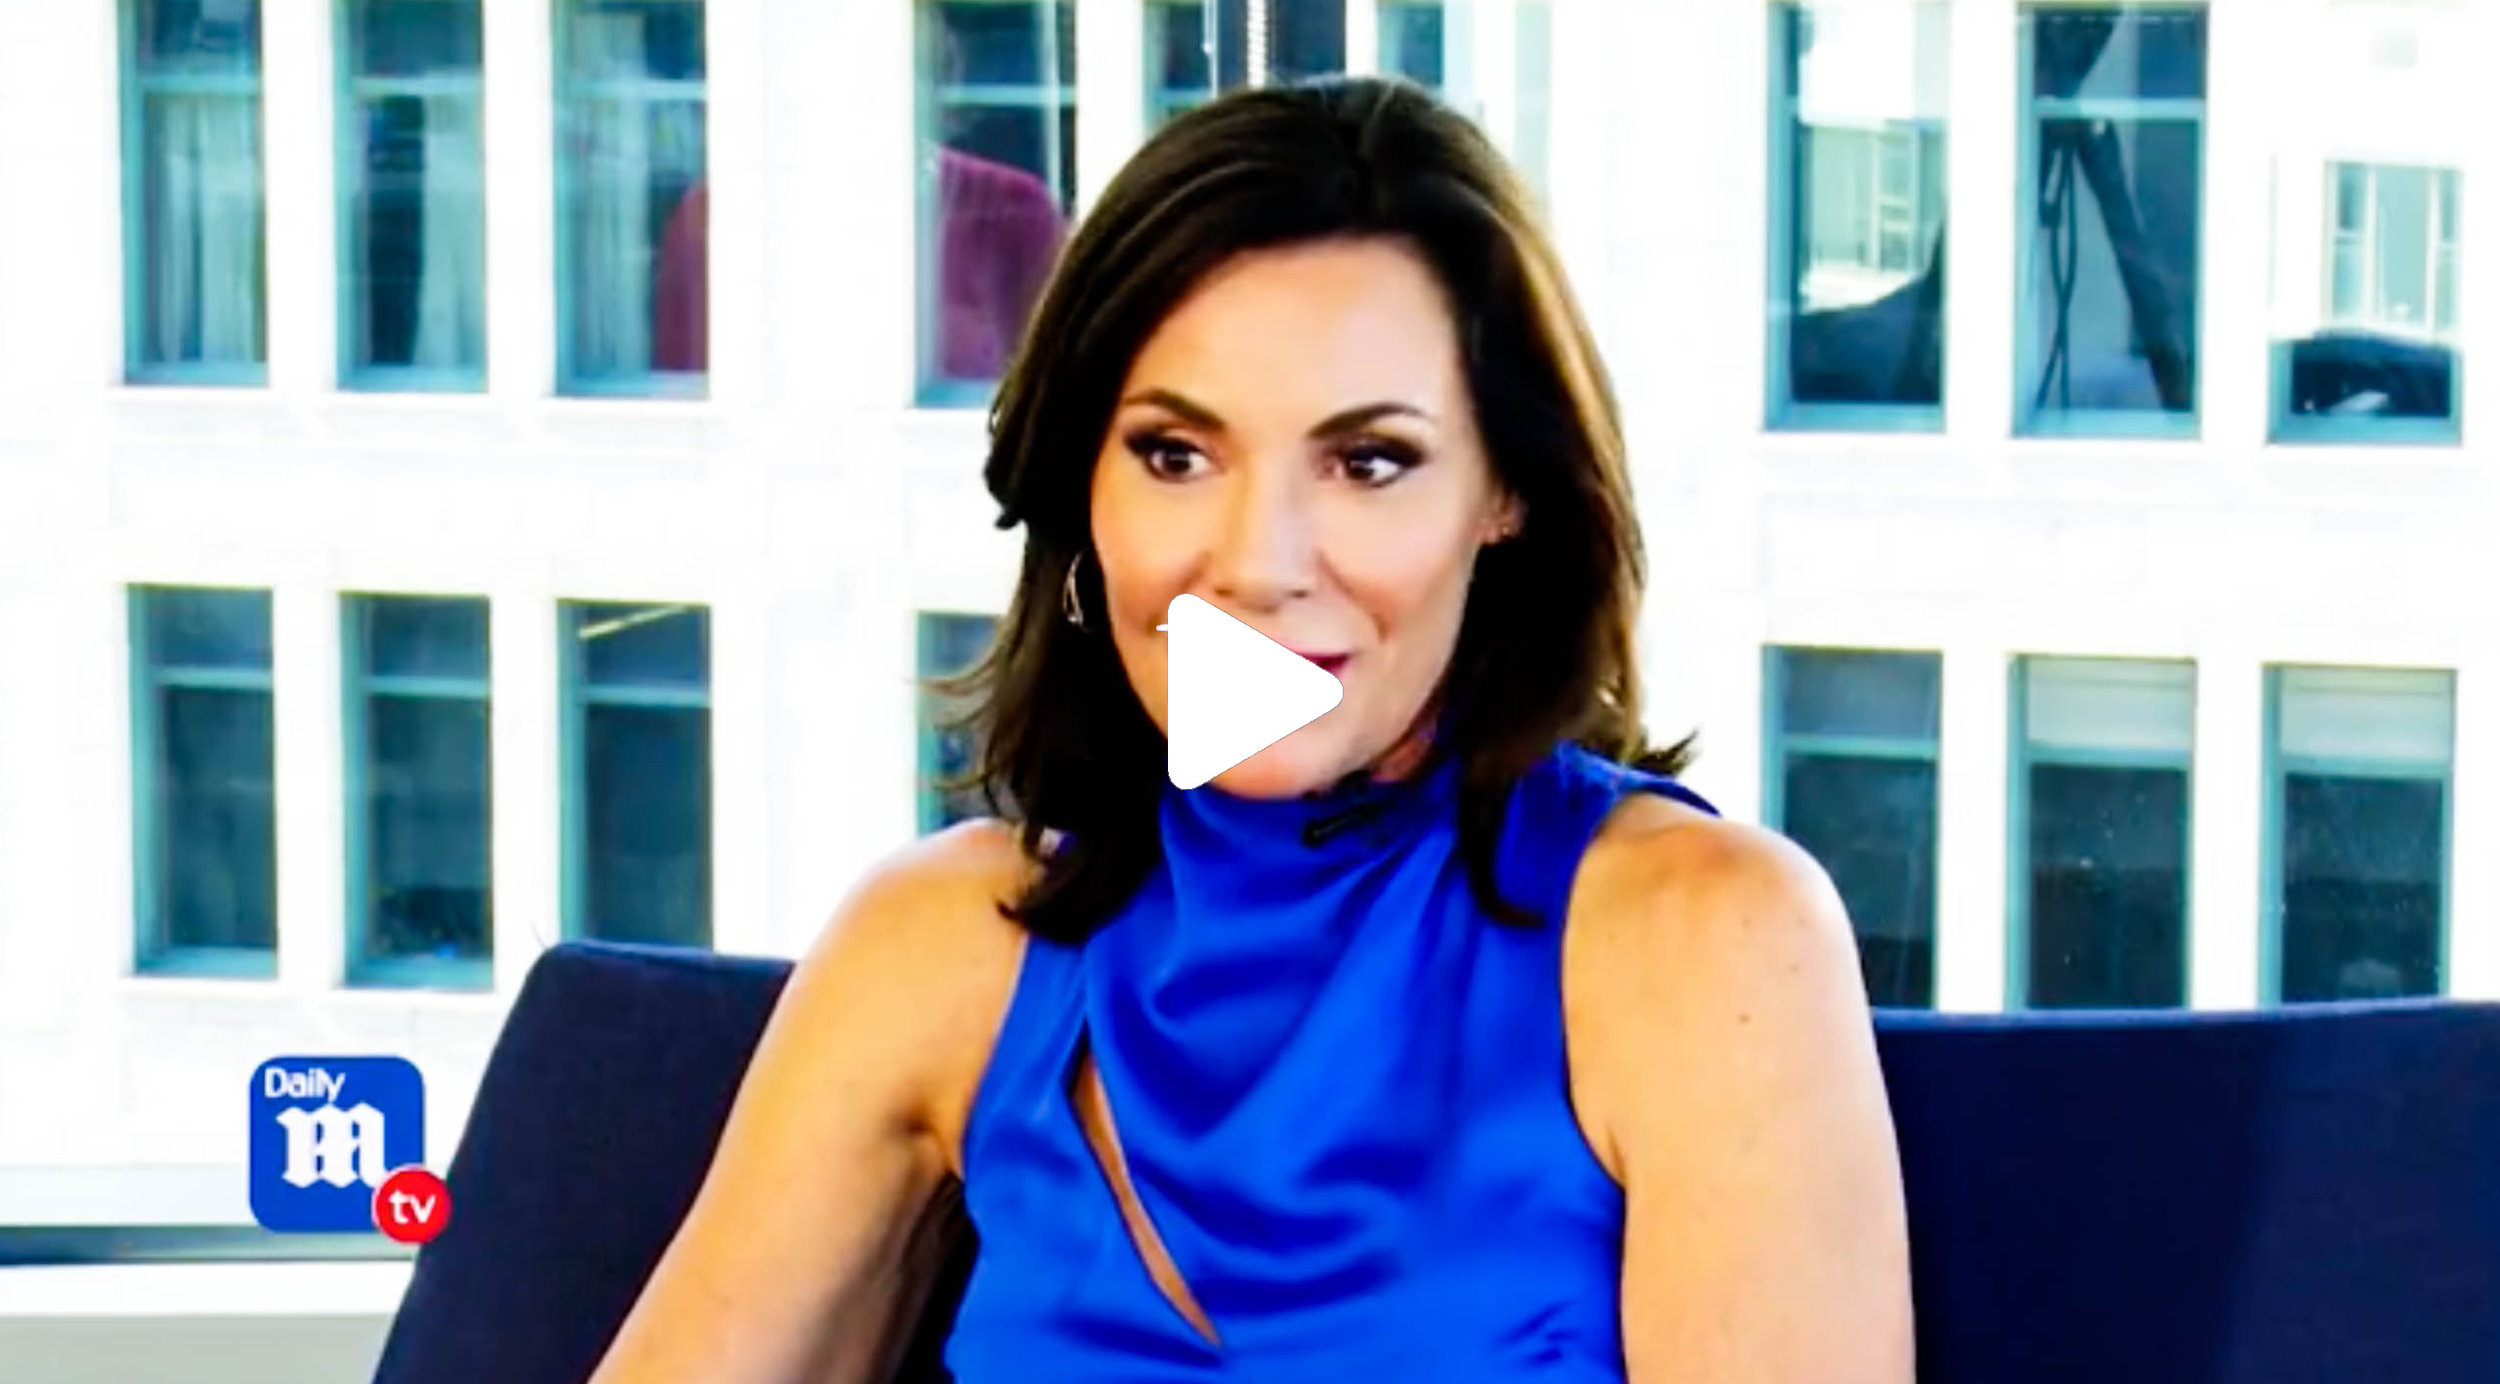 Luann de Lesseps talks sobriety and Bethenny's departure on DailyMail TV.